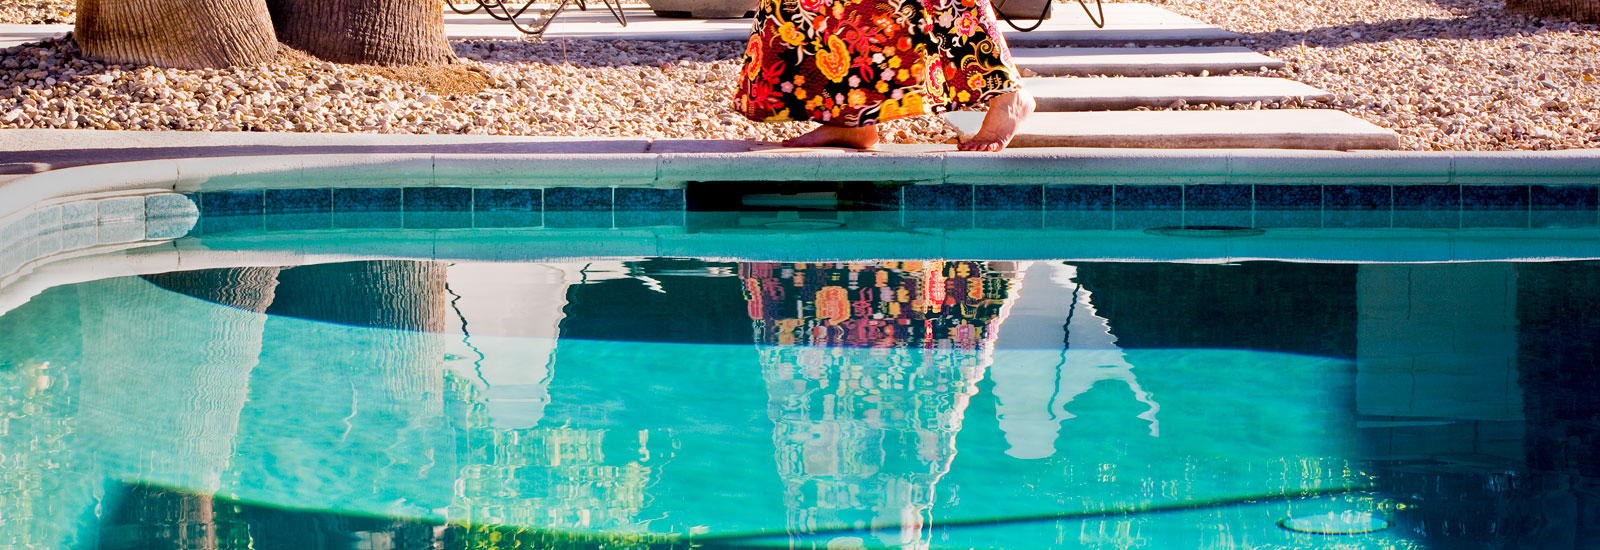 © Nancy Baron: »Backyard Morning«, (detail), 2012, aus der Serie | from the series »Palm Springs – The Good Life Goes On«, 81,28 x 121,92 cm, Ed. 5 + 2 AP